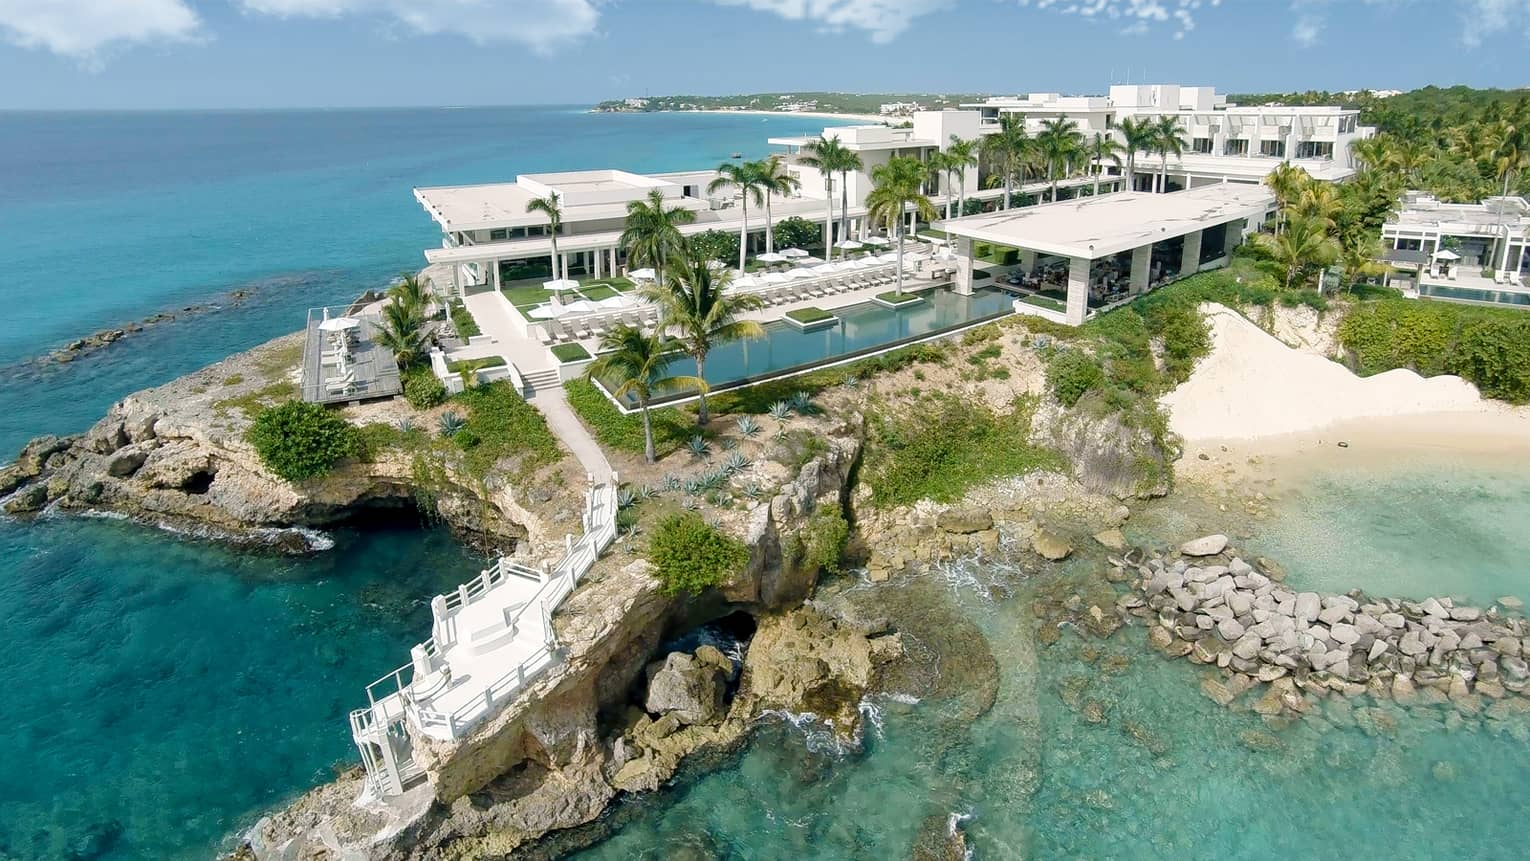 Aerial view of Four Seasons Resort Anguilla white buildings, pool, palm trees, rocky shore and white sand beach on ocean